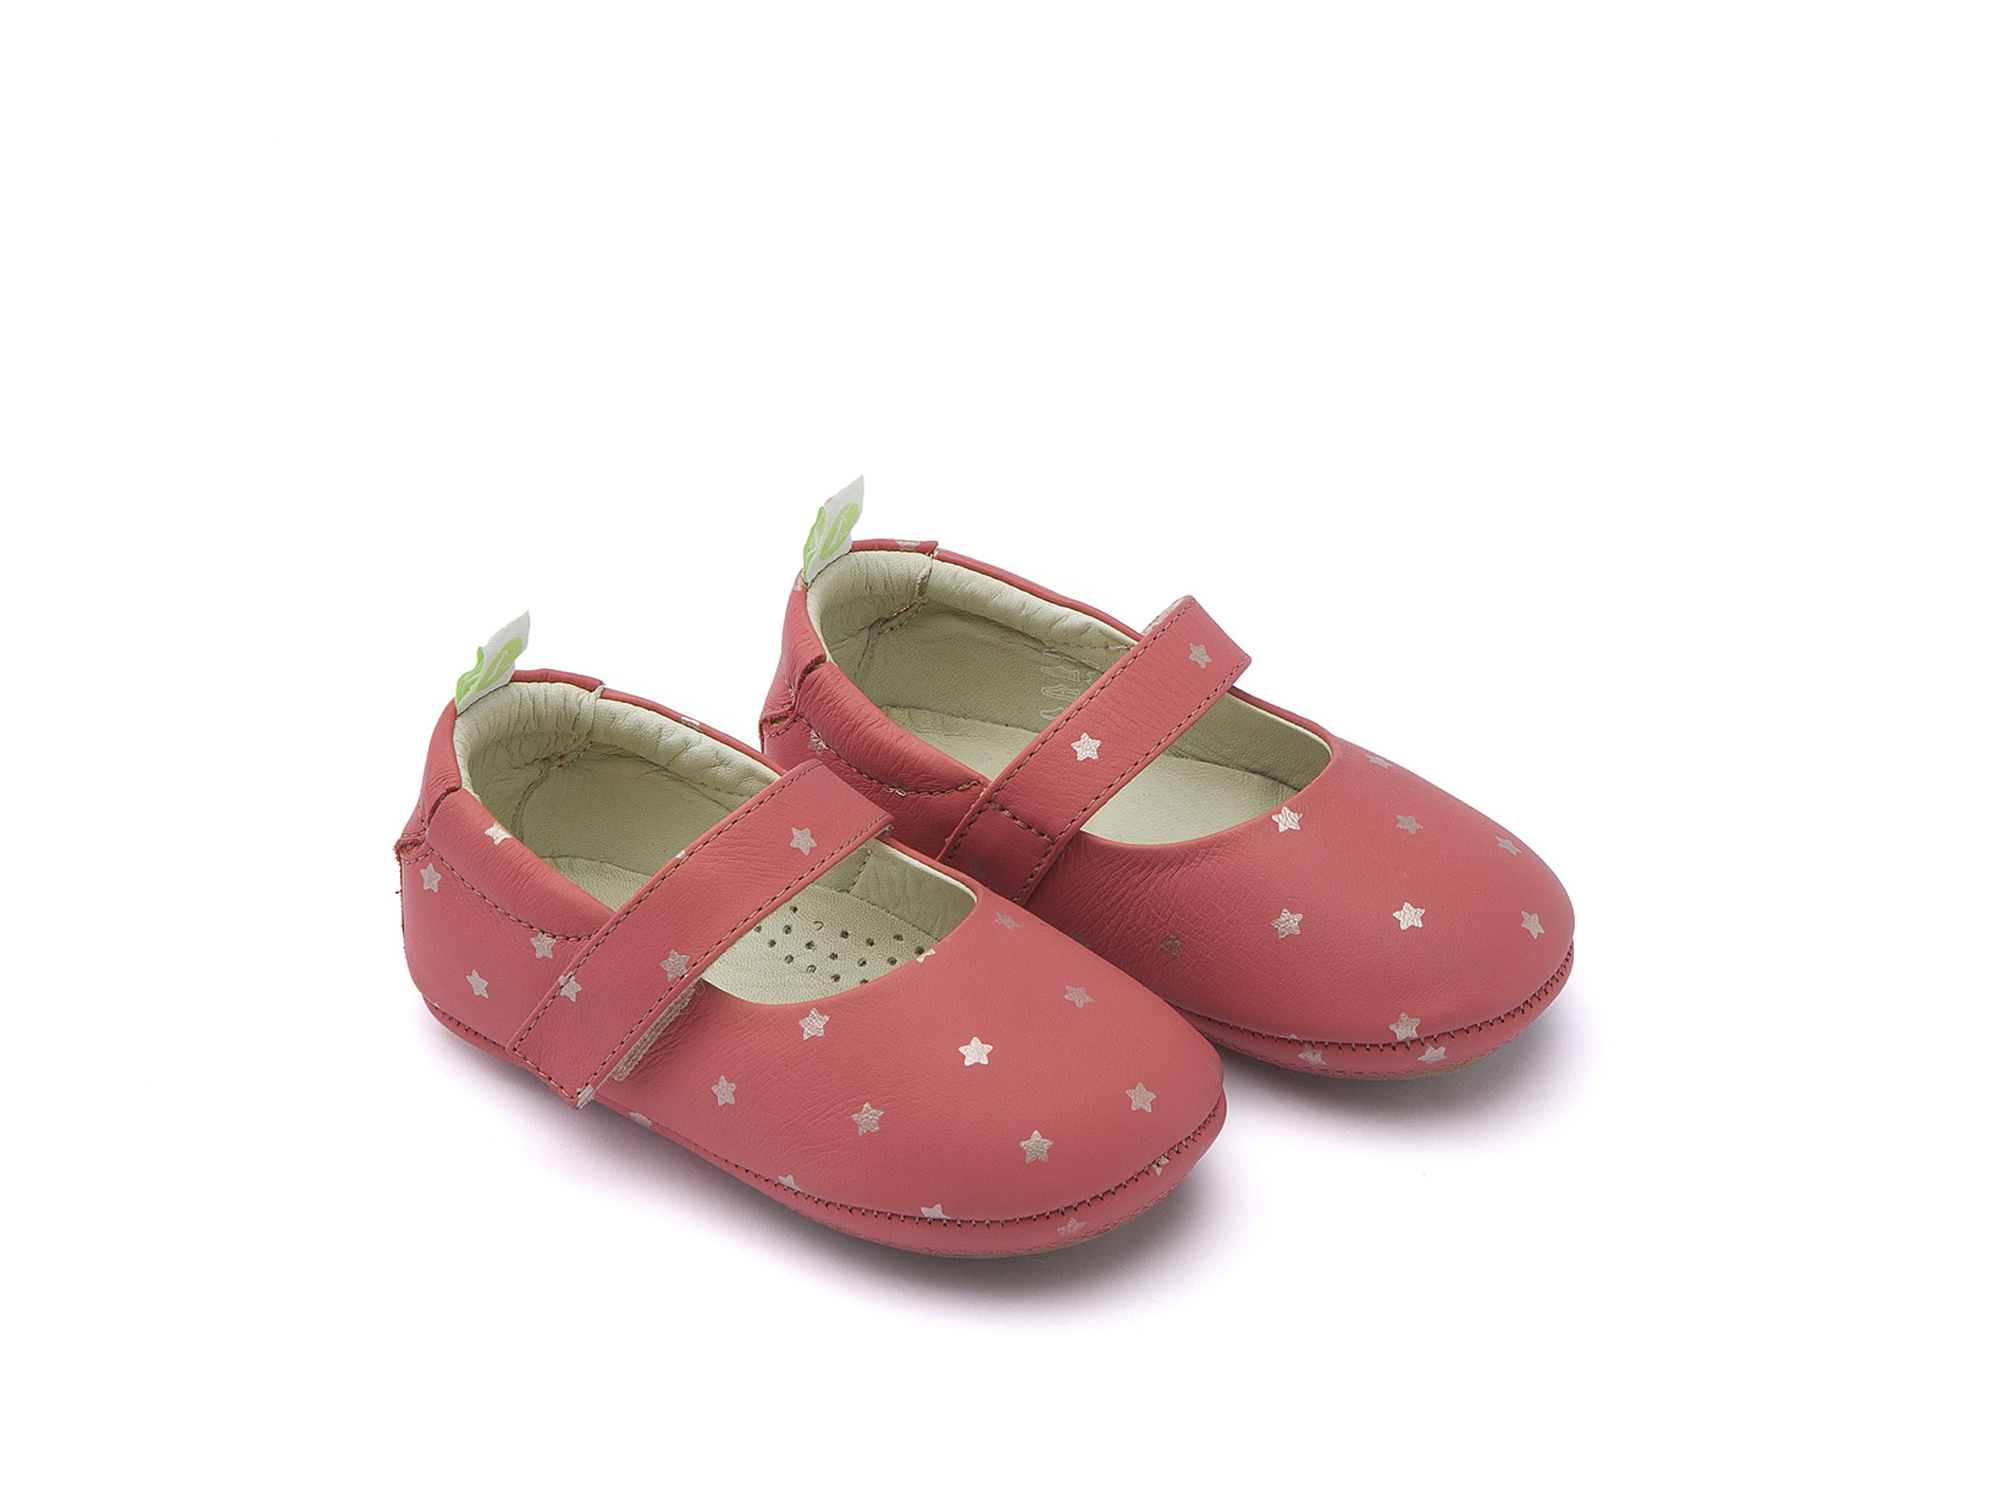 Boneca Dolly Coral Matte Stars Baby 0 à 2 anos - 0